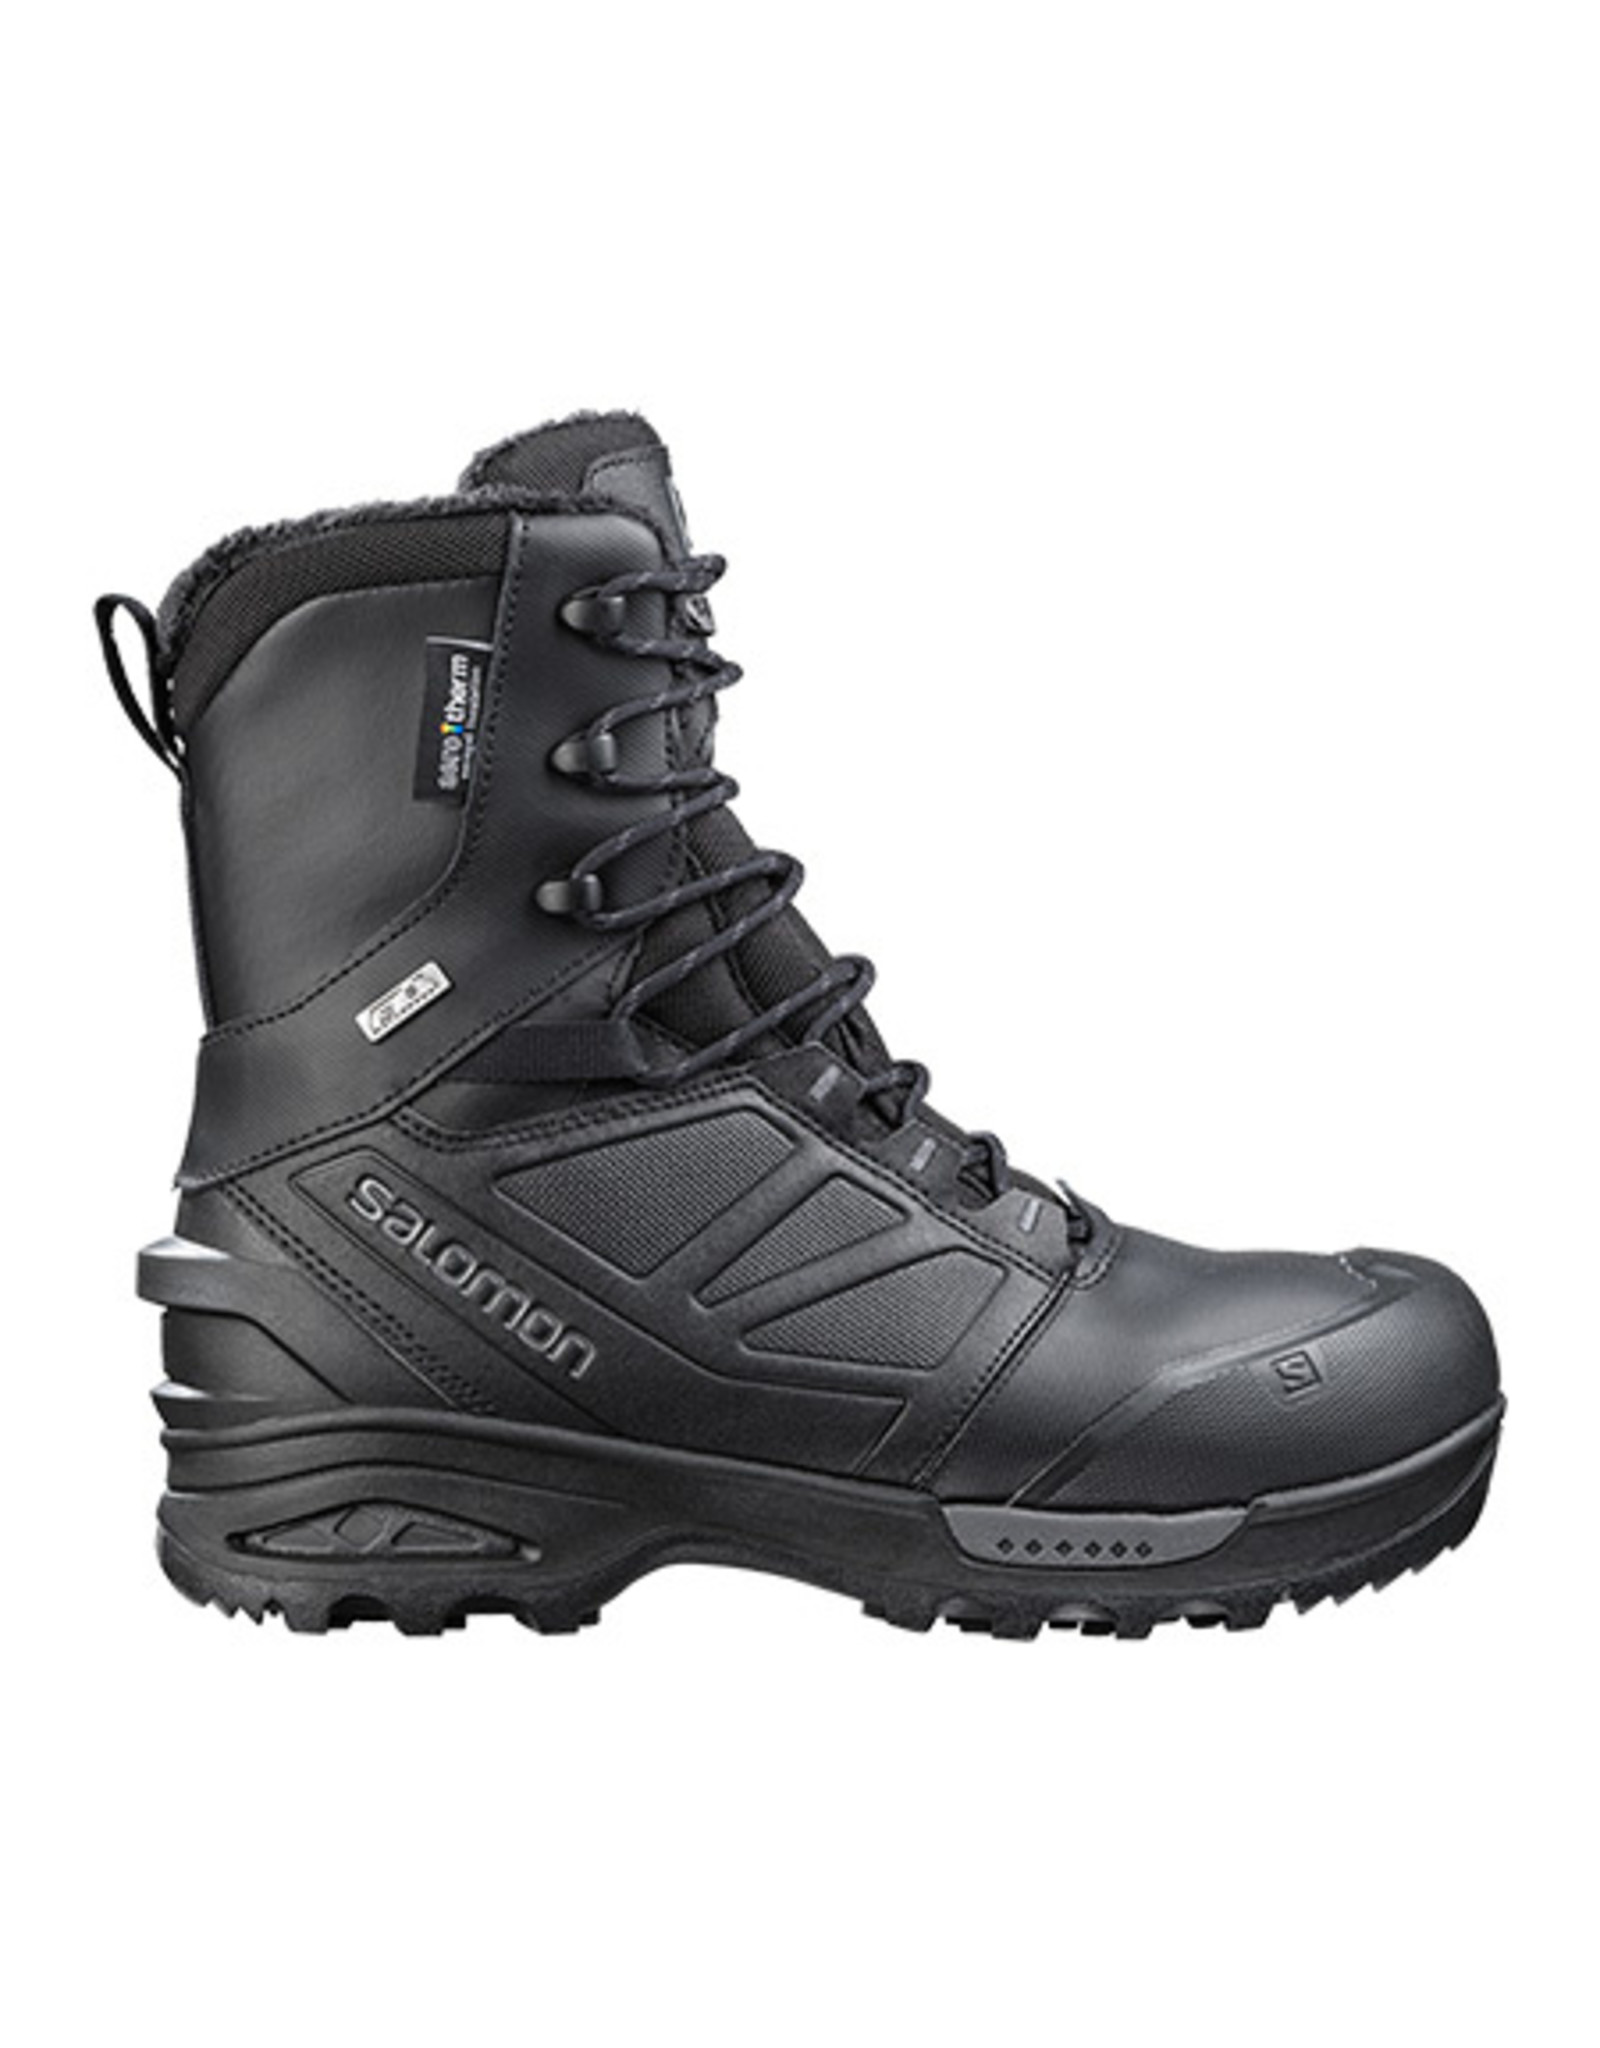 SALOMON TOUNDRA FORCES CSWP INSULATED TACTICAL BOOT